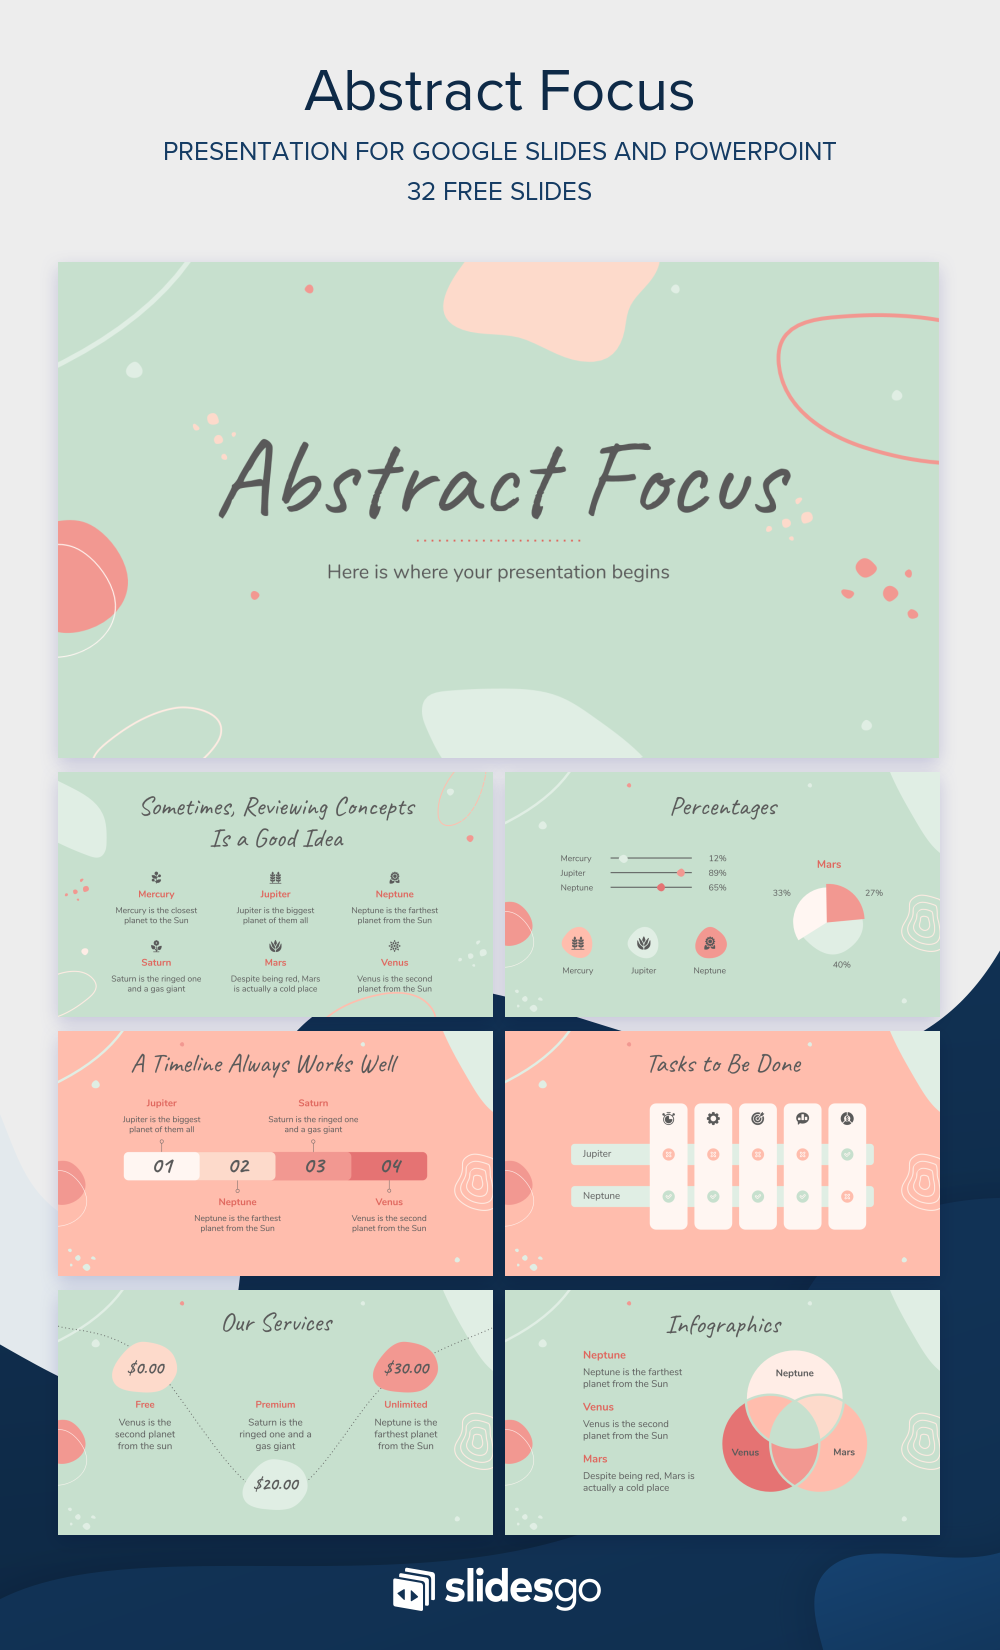 Download And Edit Now This Abstract Focus Presentation And Adapt It T Powerpoint Presentation Design Free Powerpoint Presentations Presentation Design Template